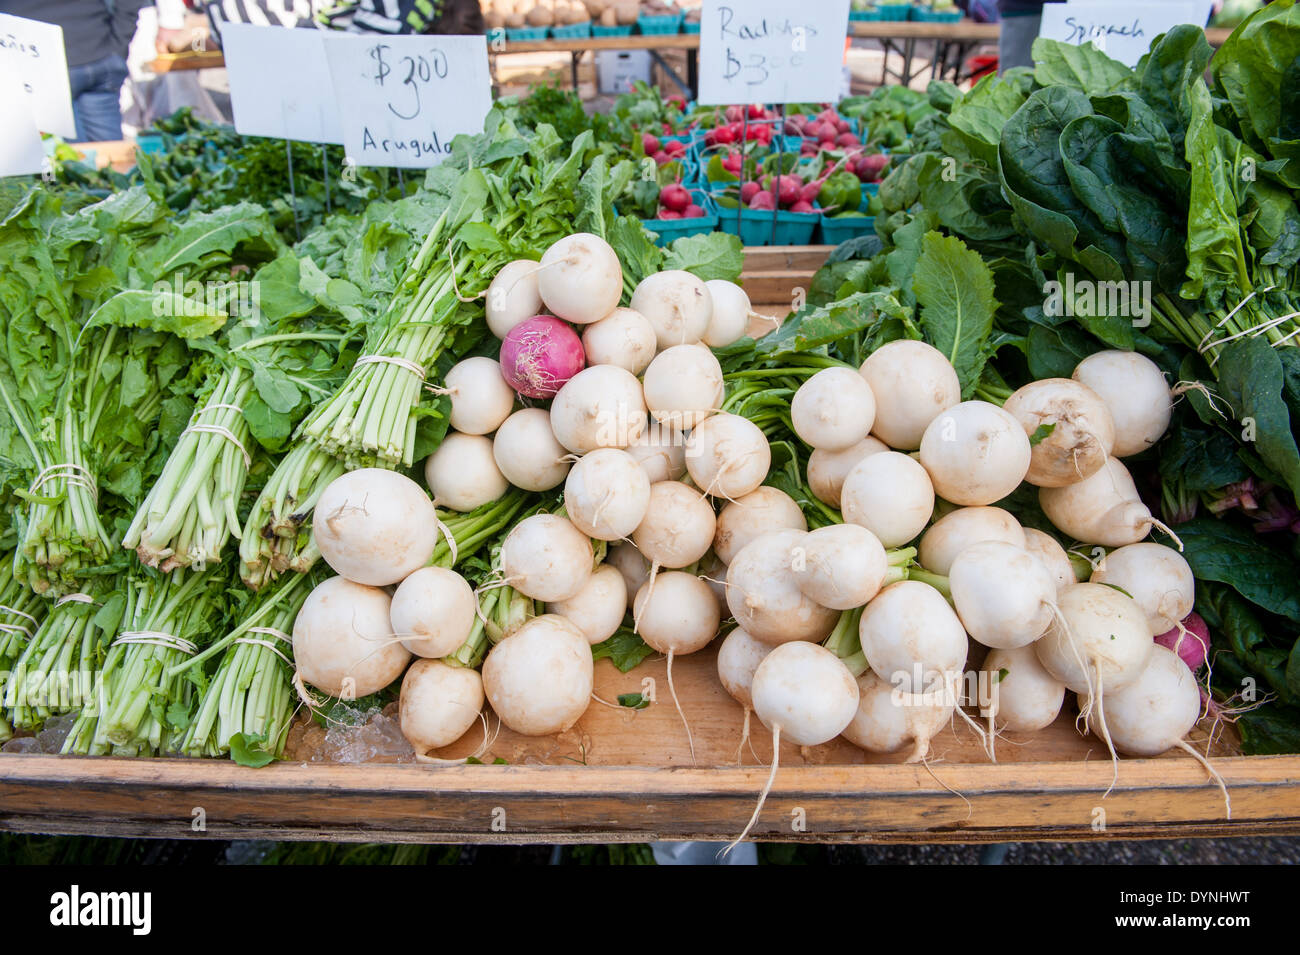 Large white root vegetables at the Waverly Farmers Market in Baltimore, Maryland - Stock Image